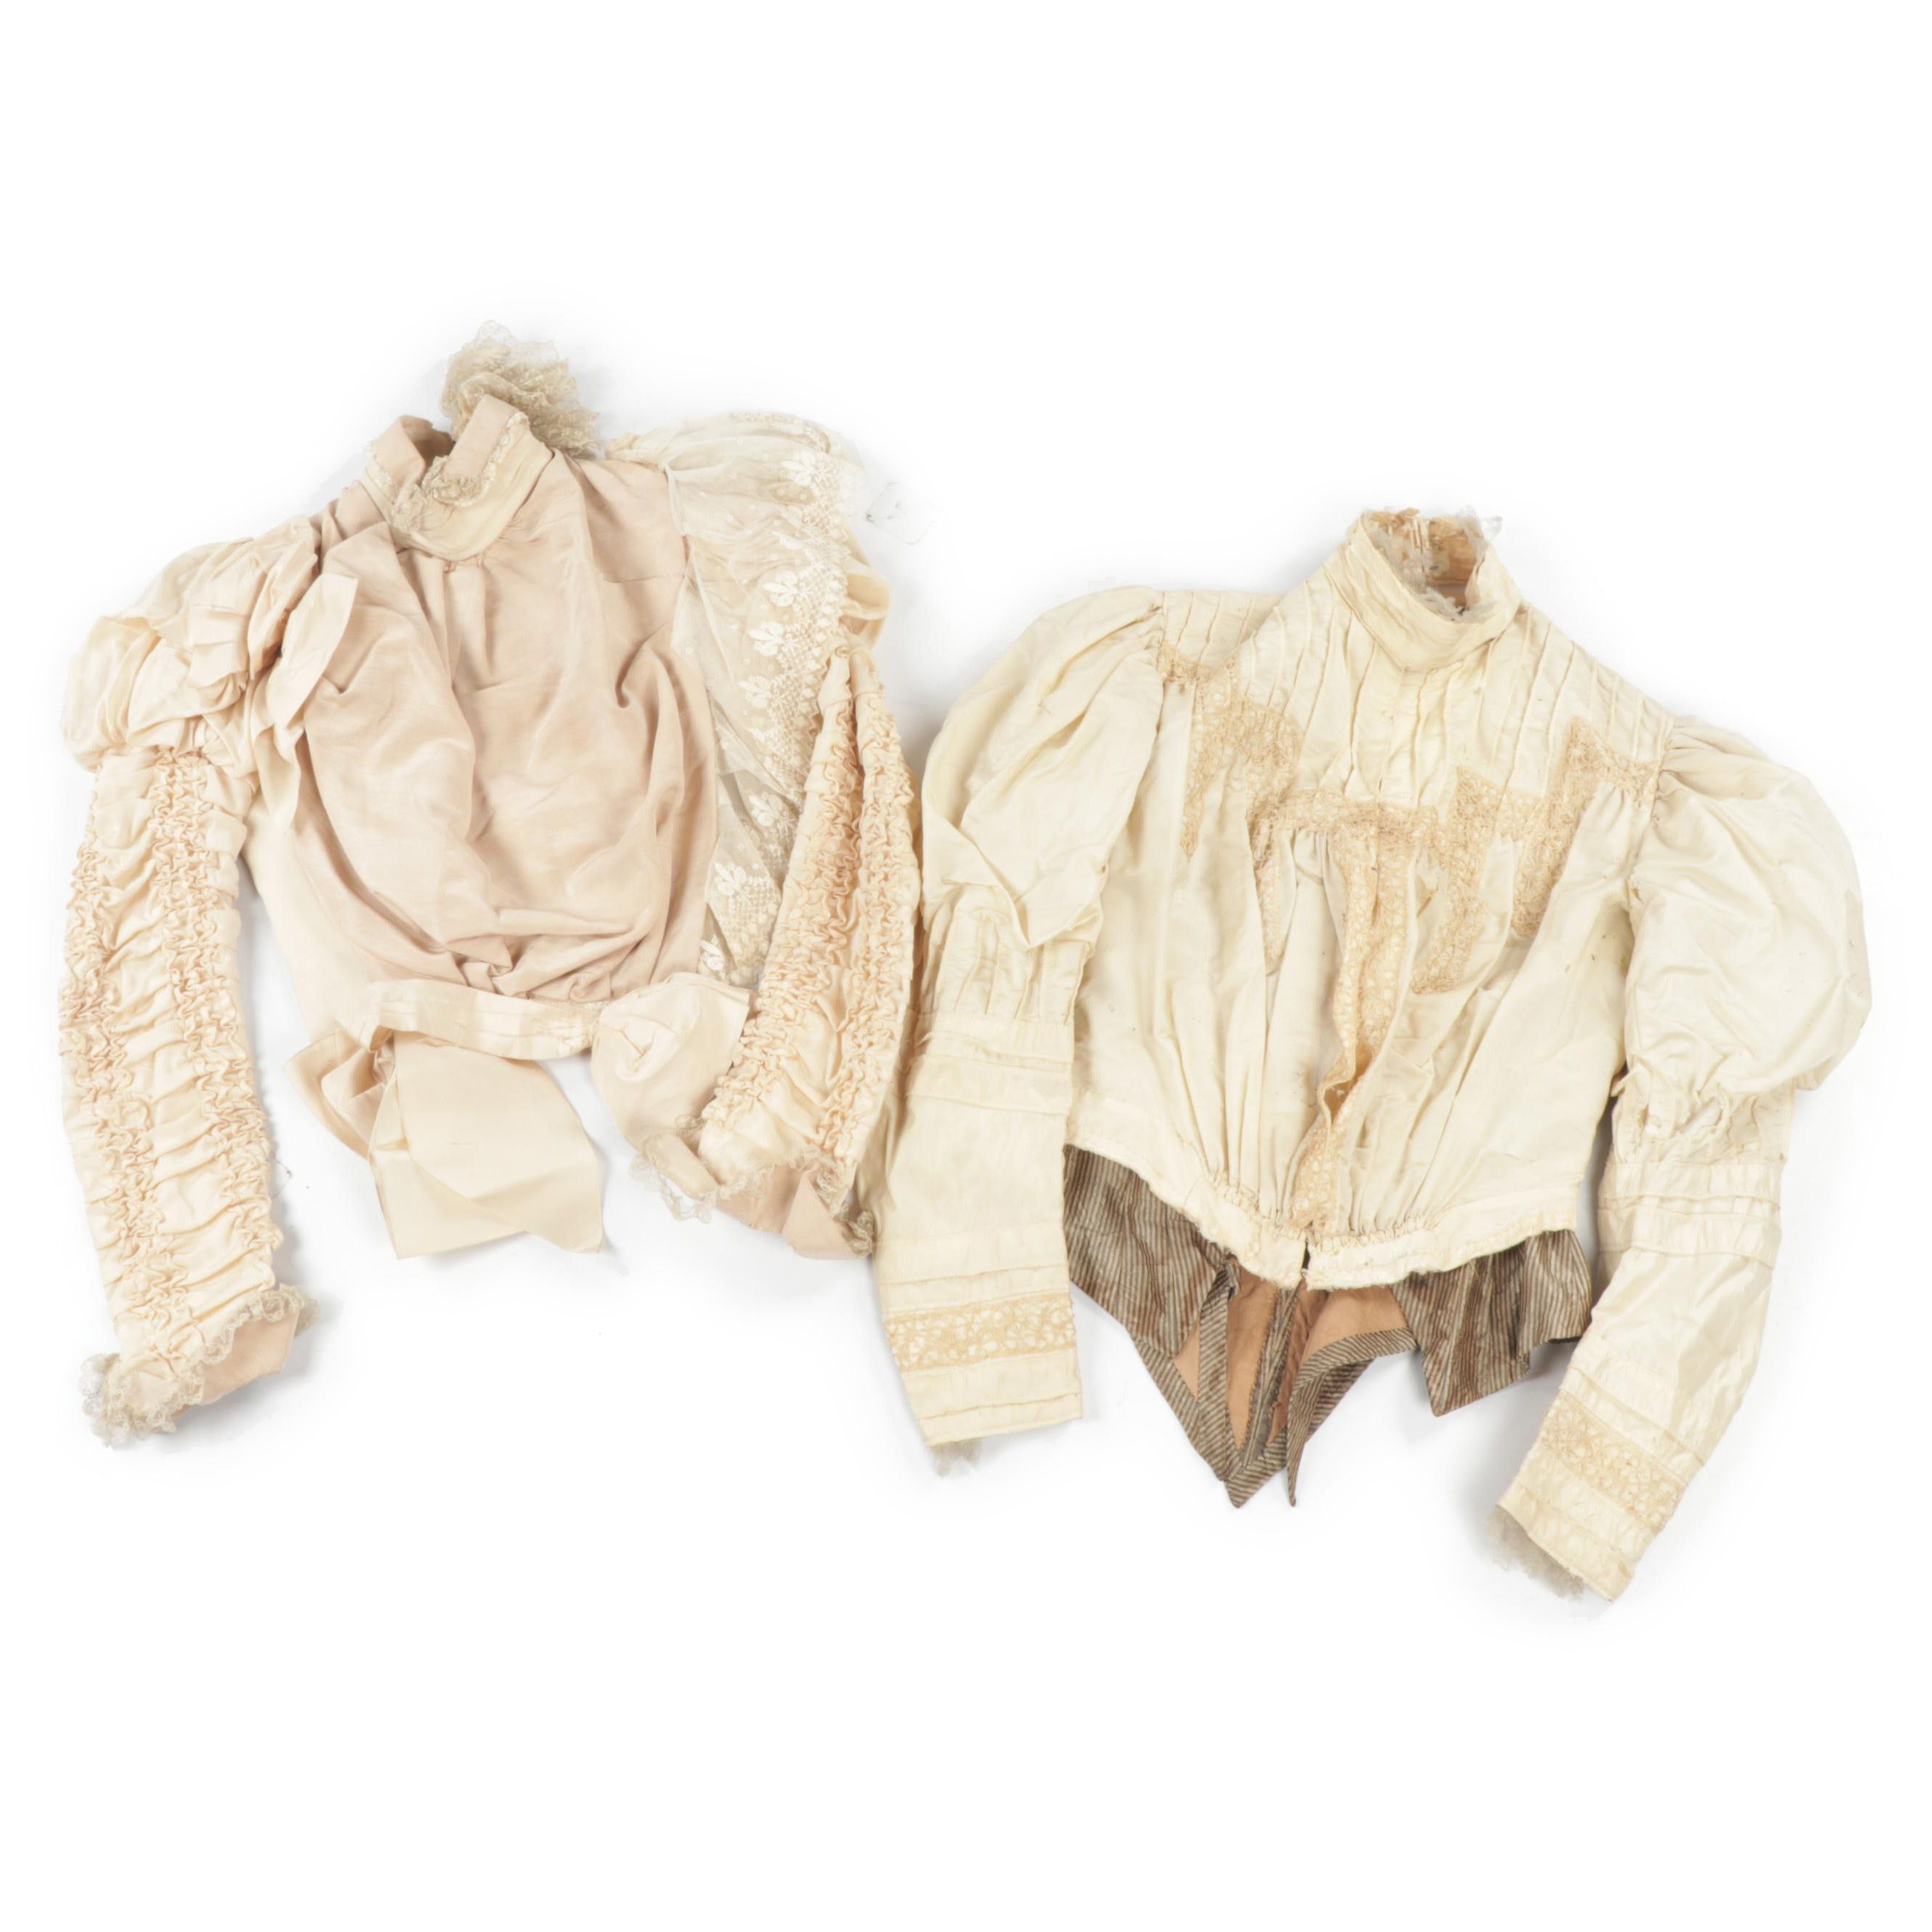 Late Victorian Ruffled Silk Blouses with Hand Tatted Lace, Late 19th Century